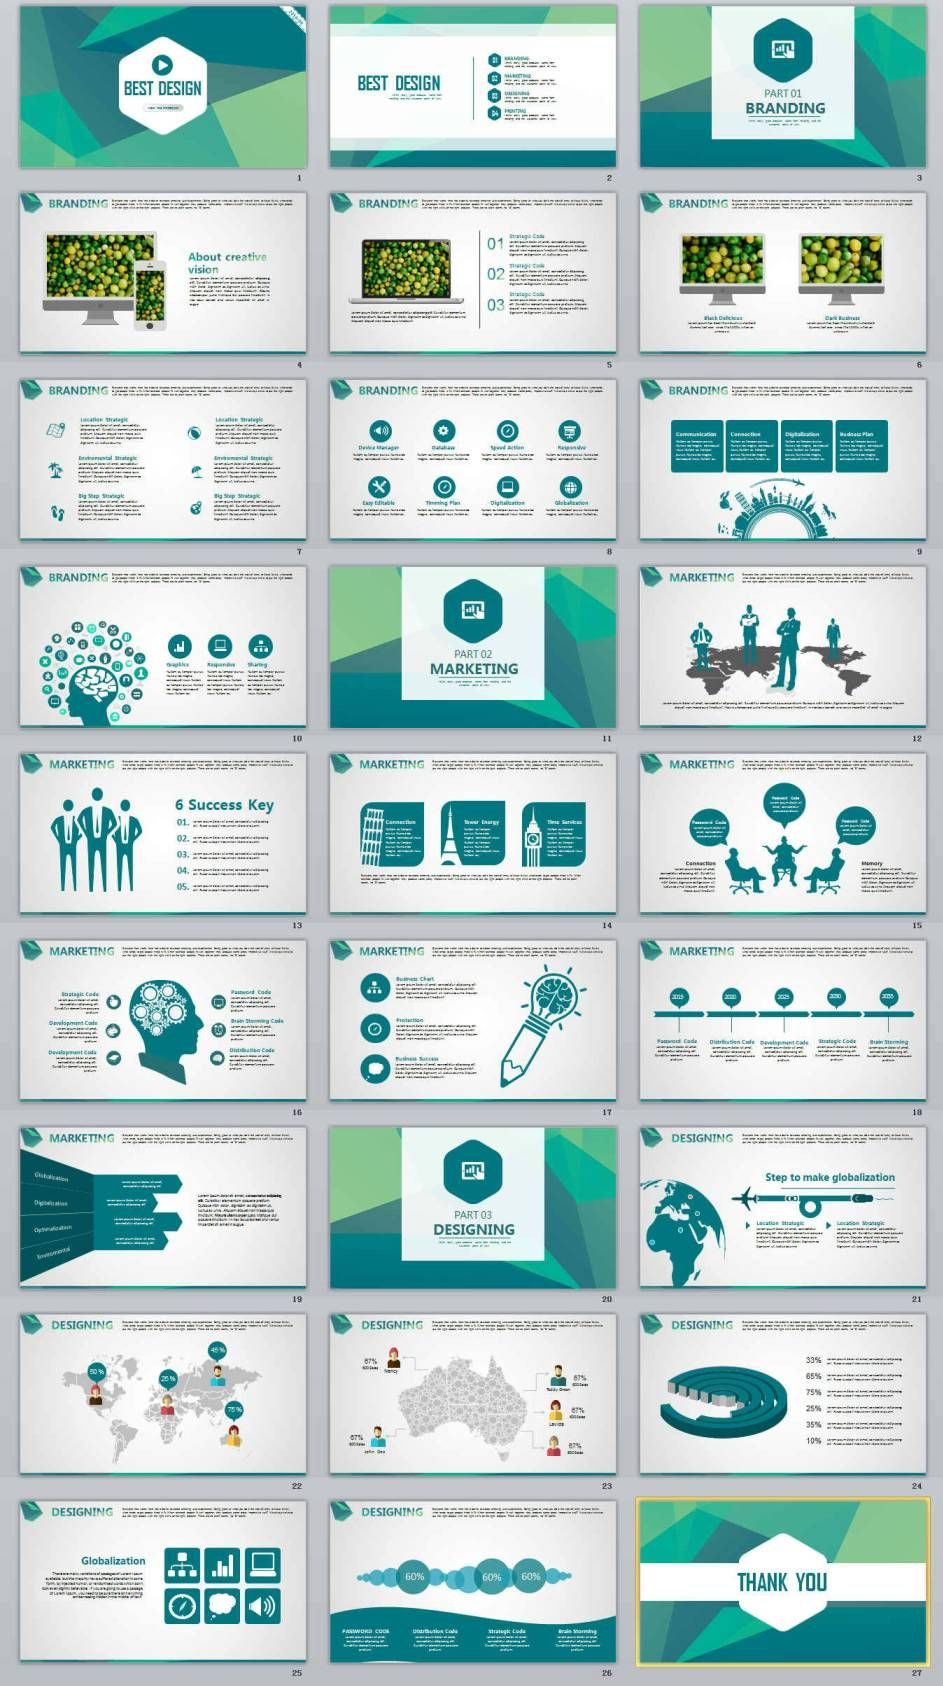 27+best design business professional powerpoint templates ...